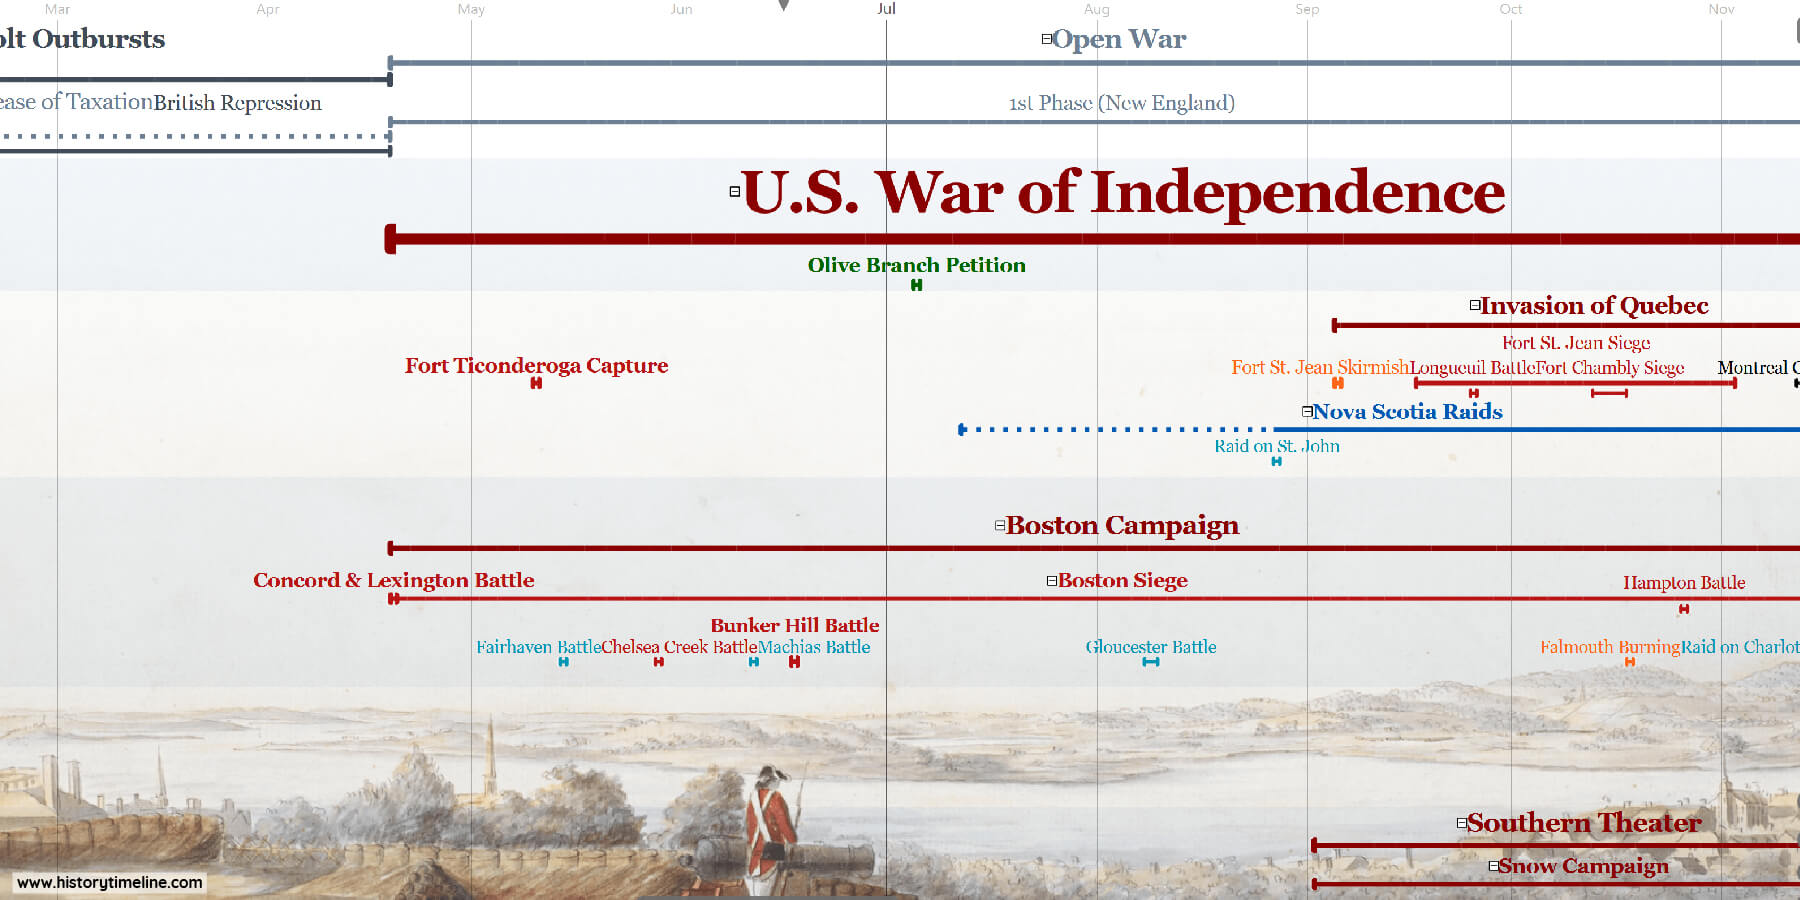 american revolution timeline including battles, events, documents and leaders